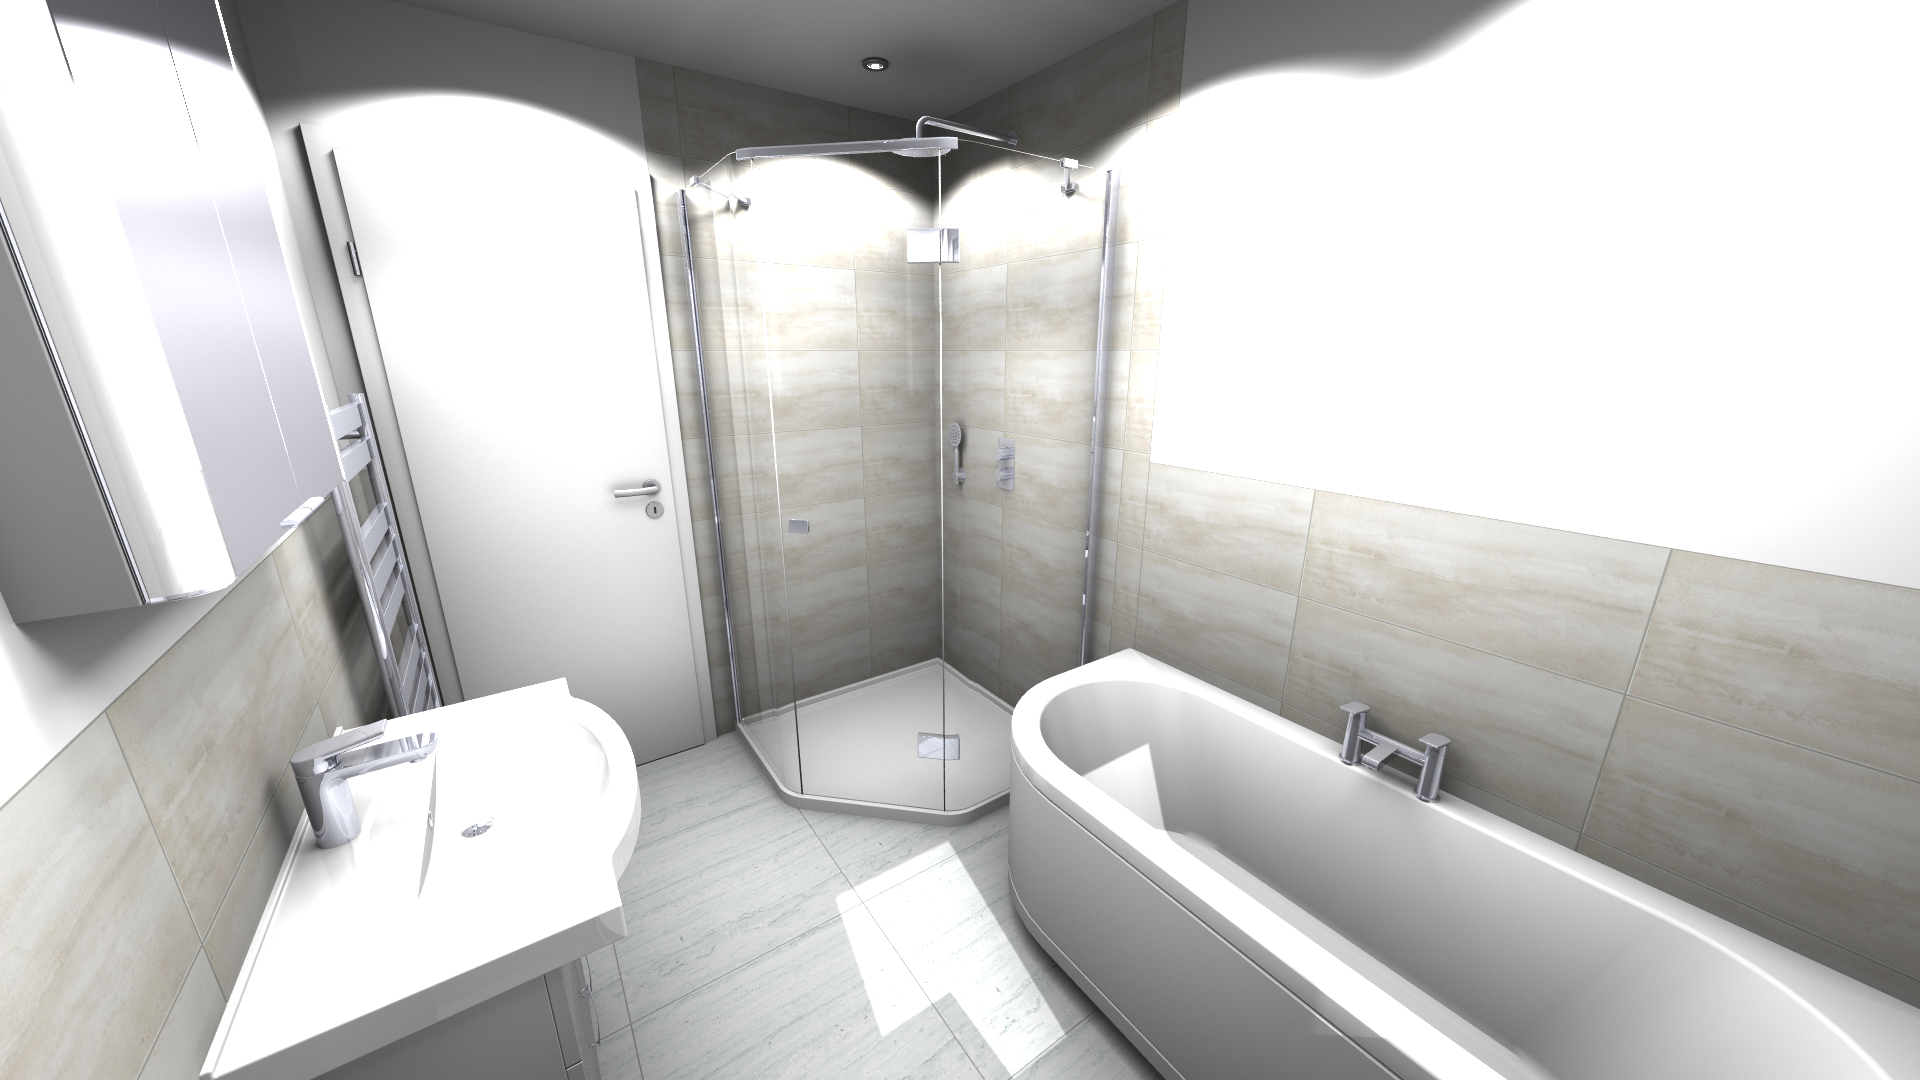 Catrina Reed Bathroom Perspective 1.png